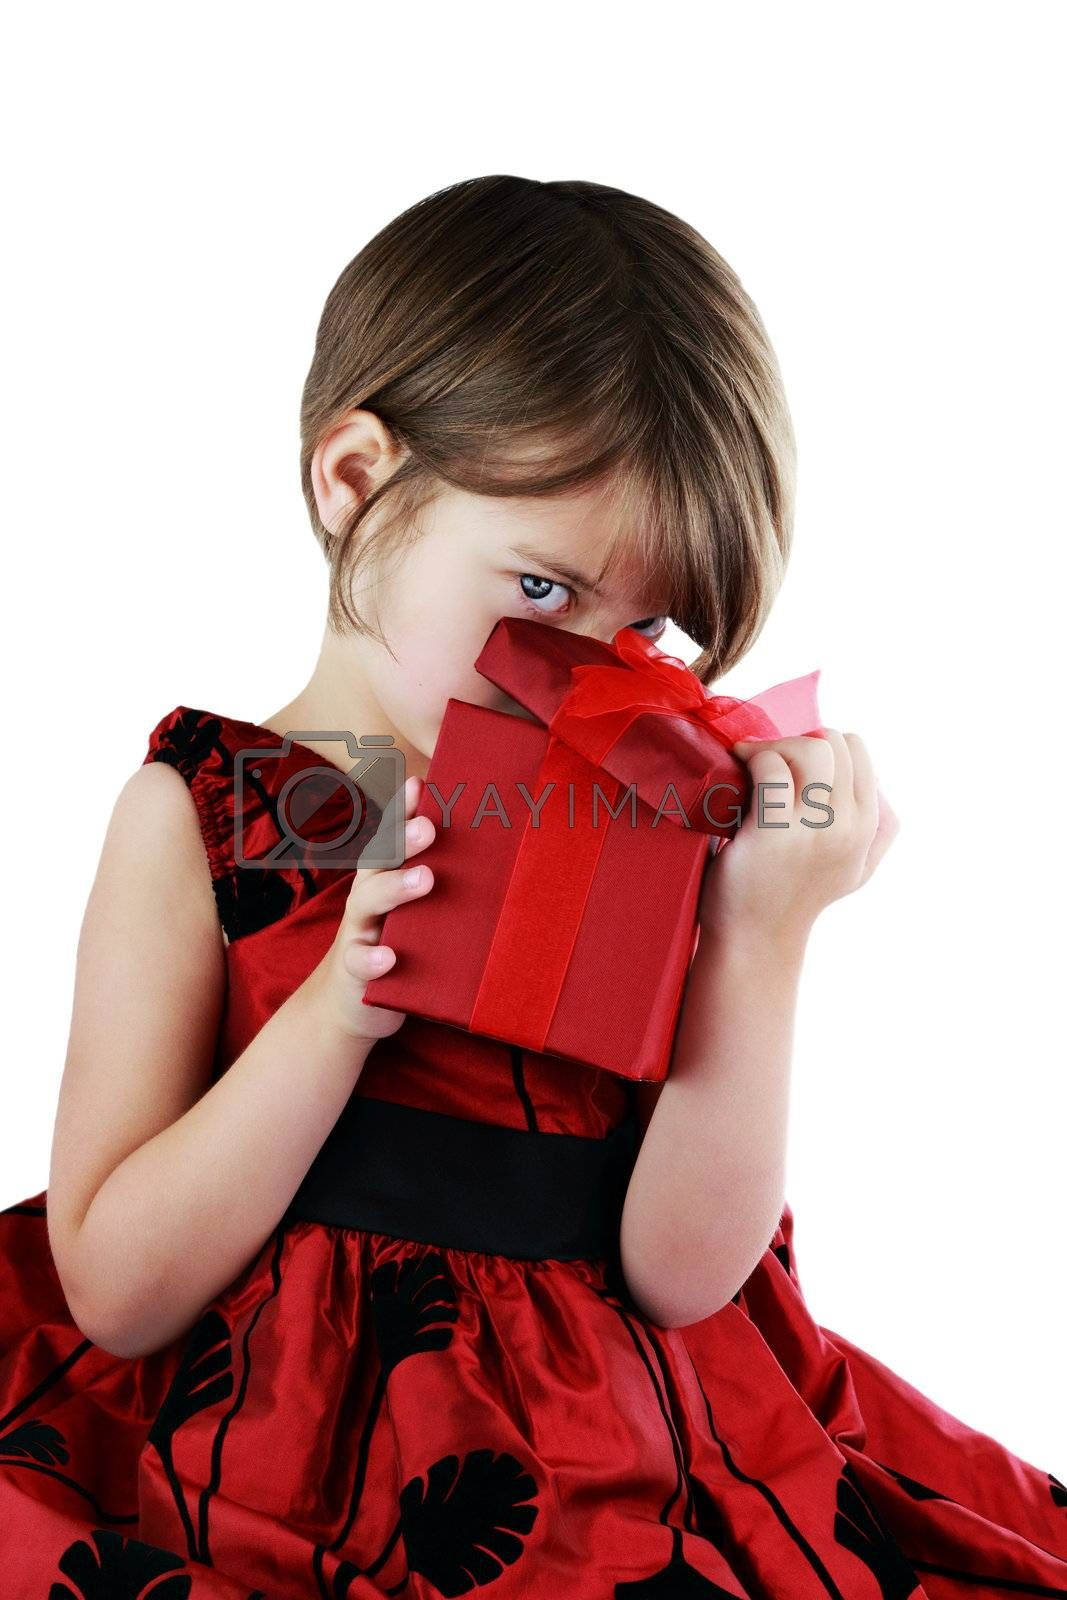 A young girl peeking into a gift she has received isolated against a white background with clipping path included.